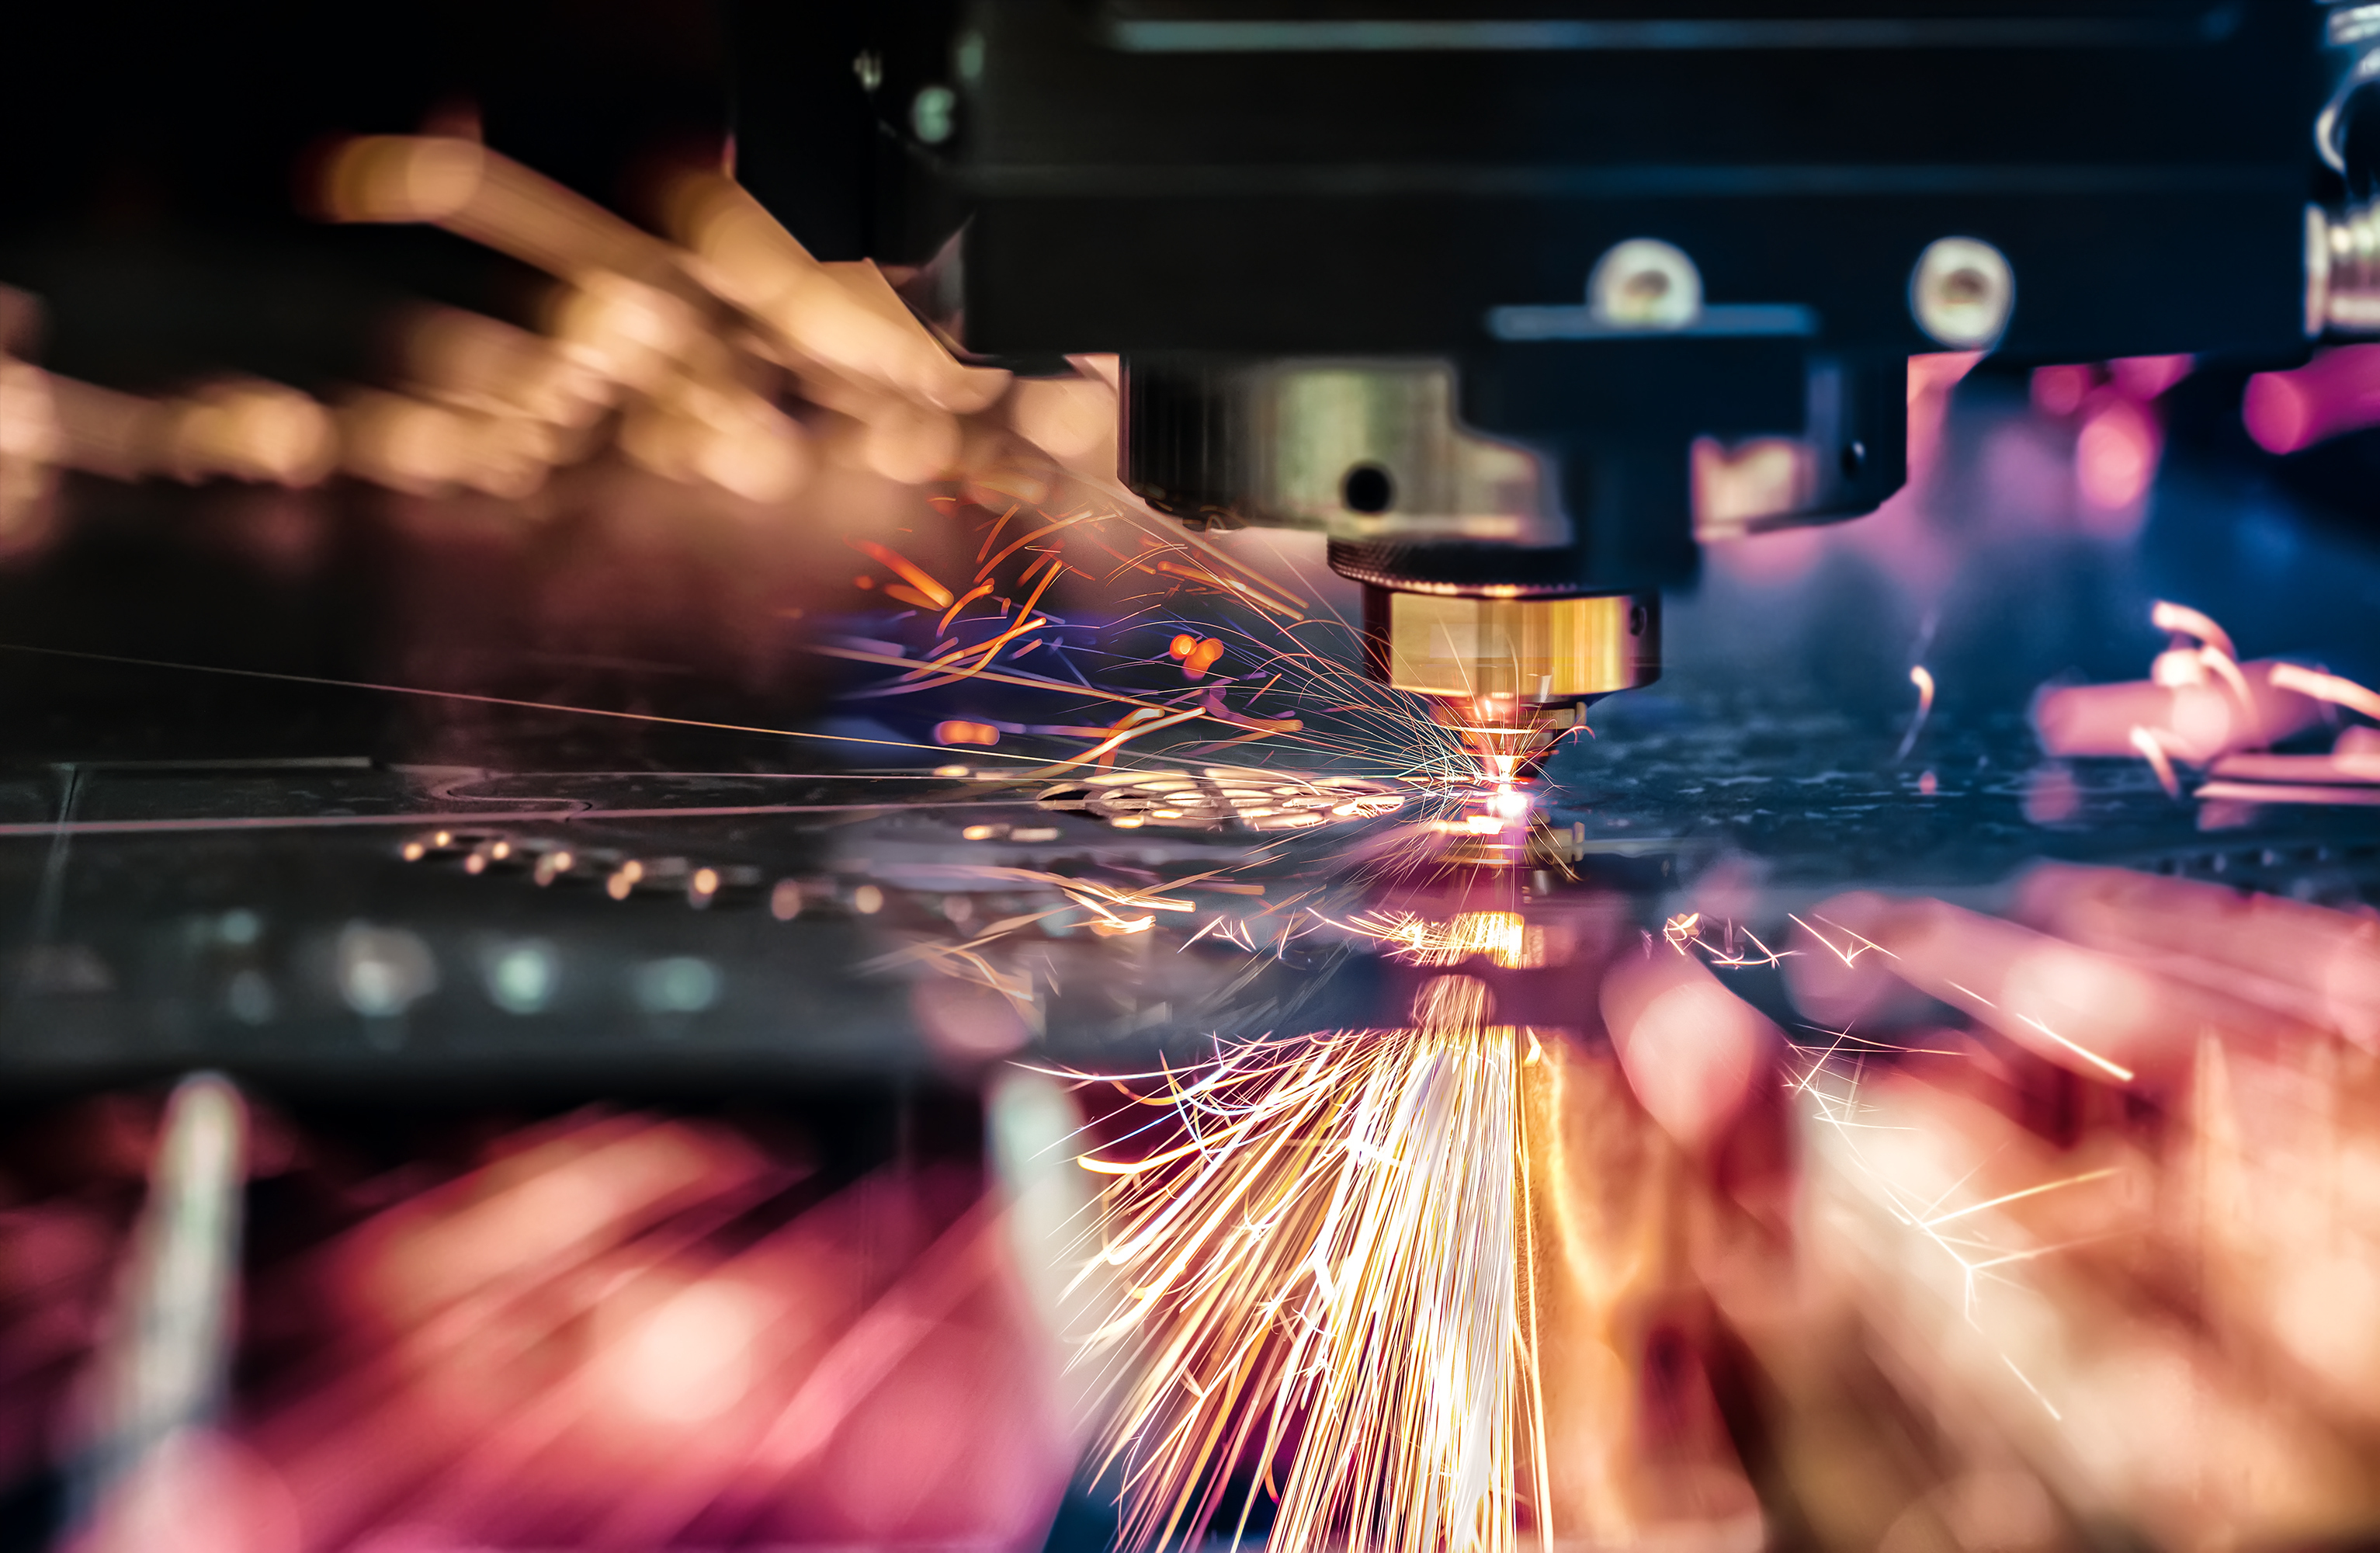 Defining the Fundamental Minimum Investments for Smart Manufacturing